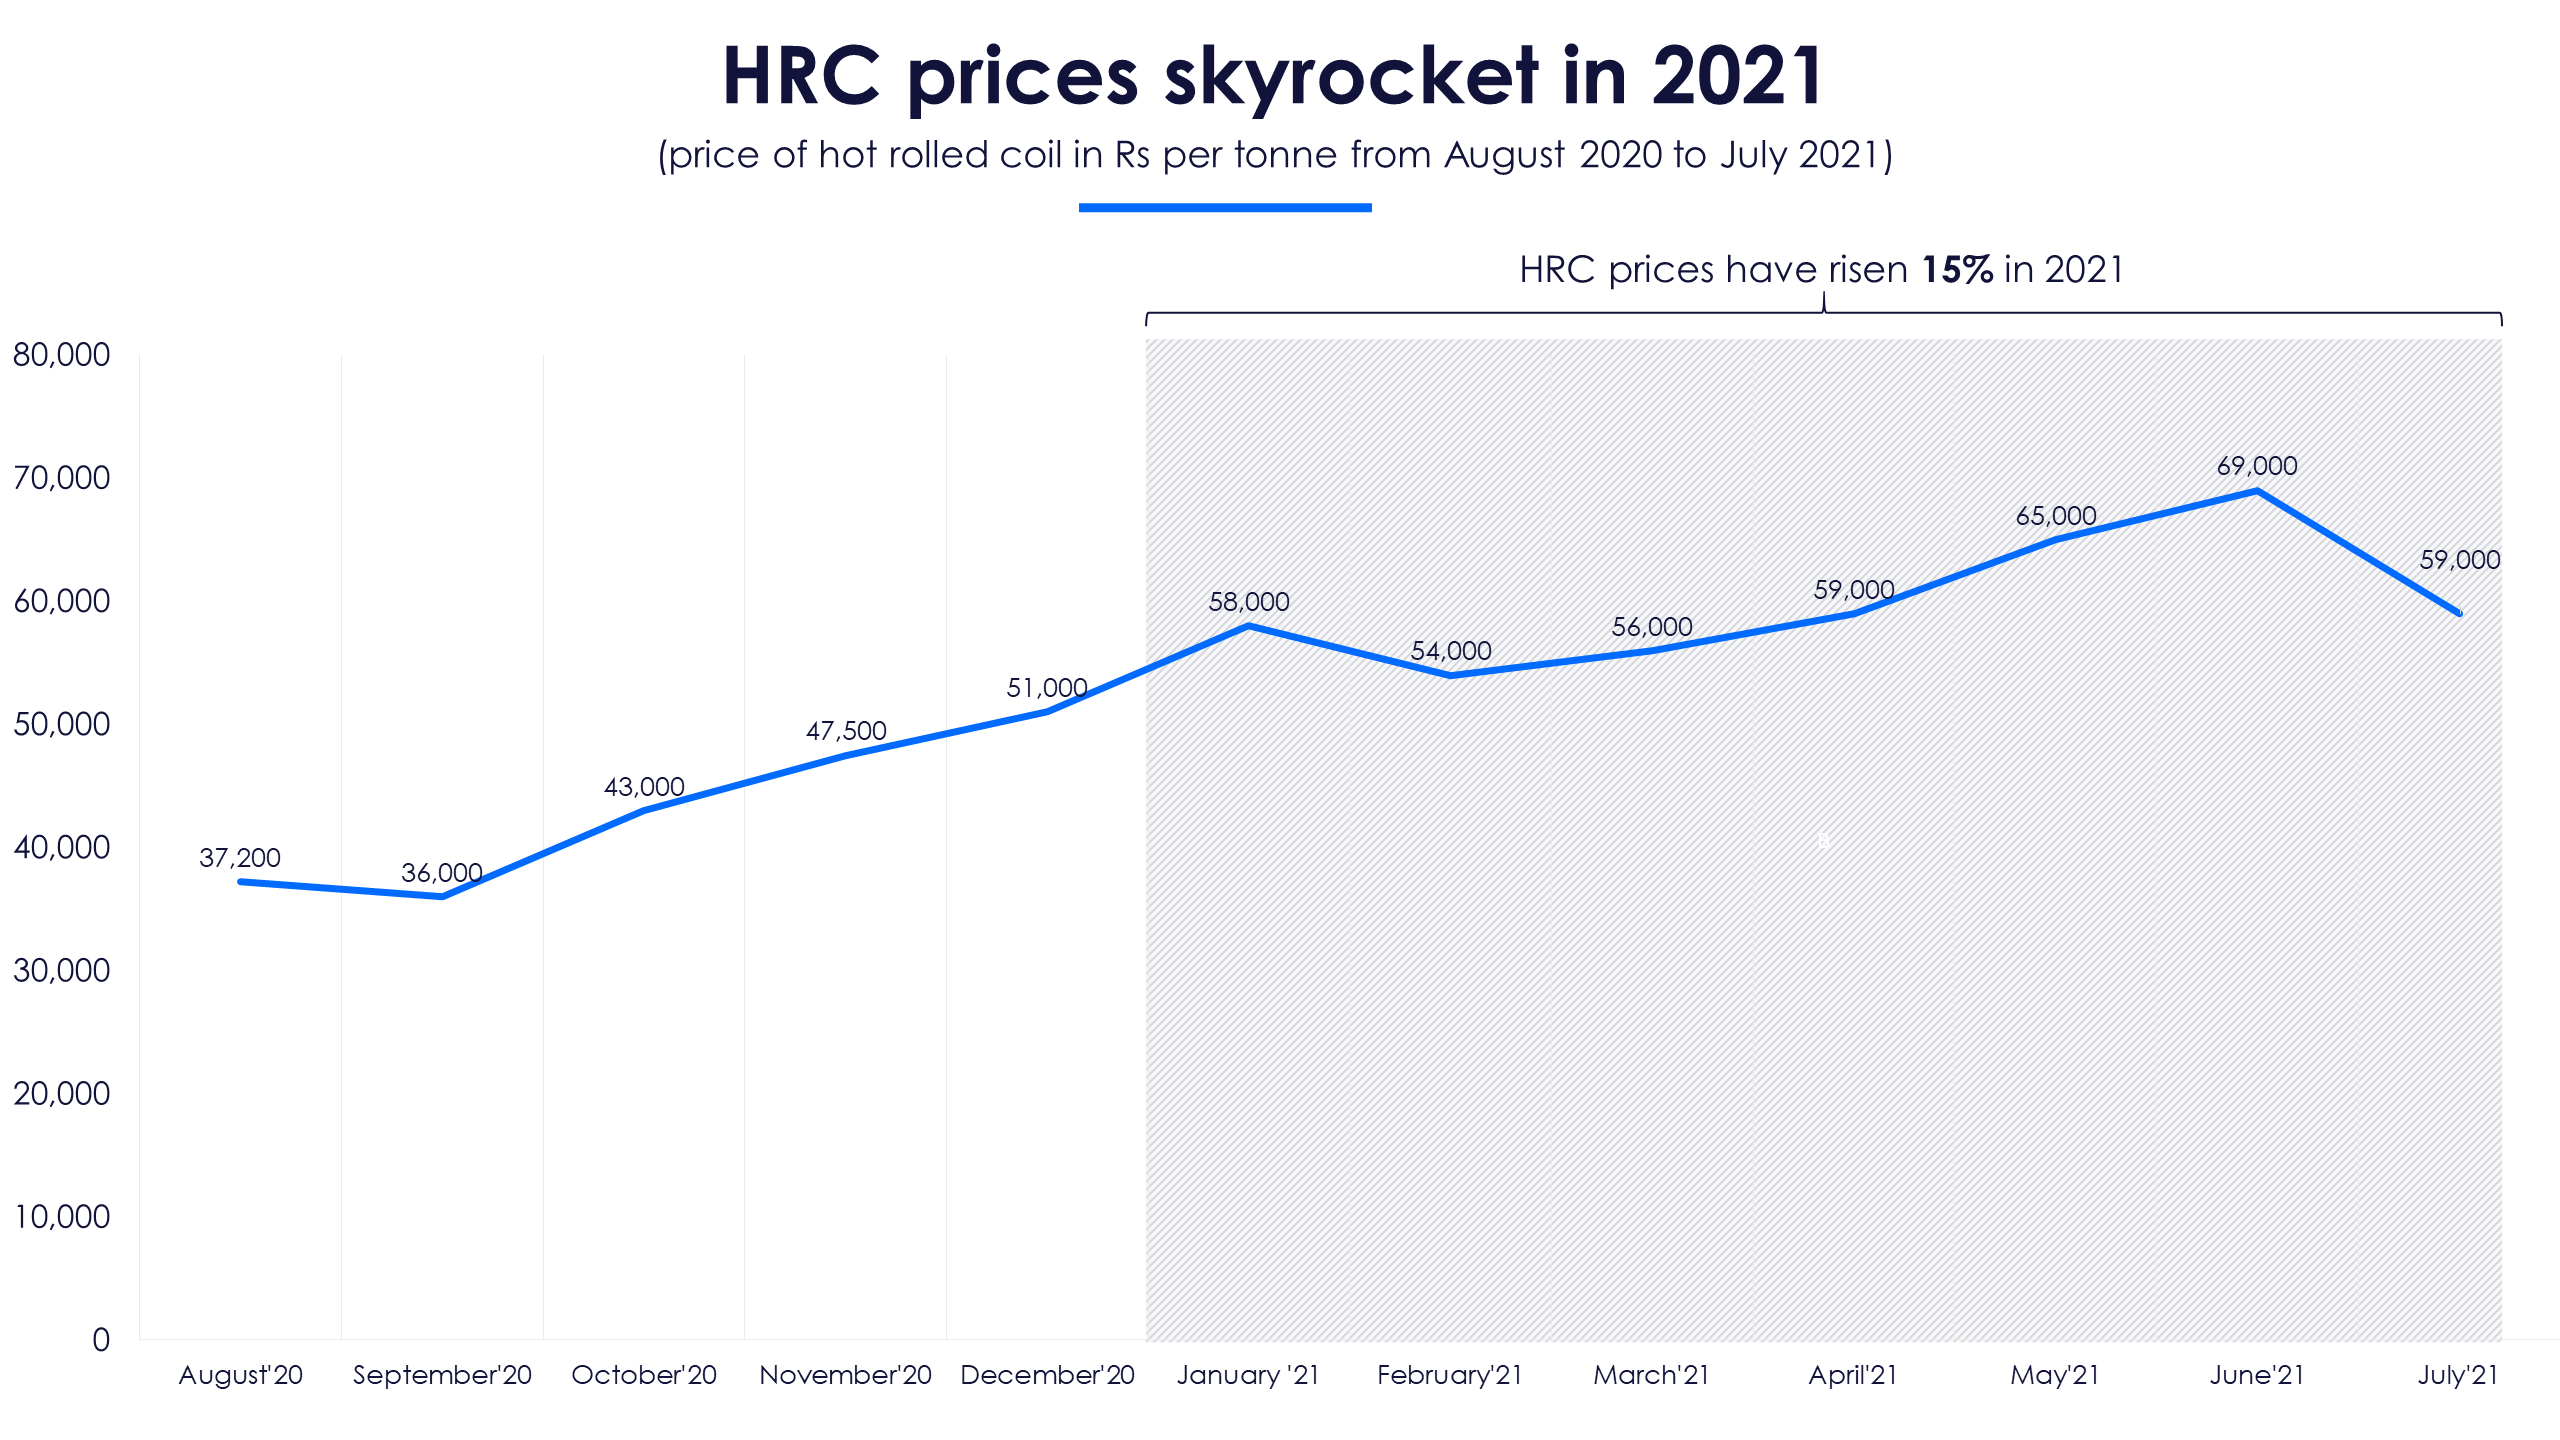 HRC prices